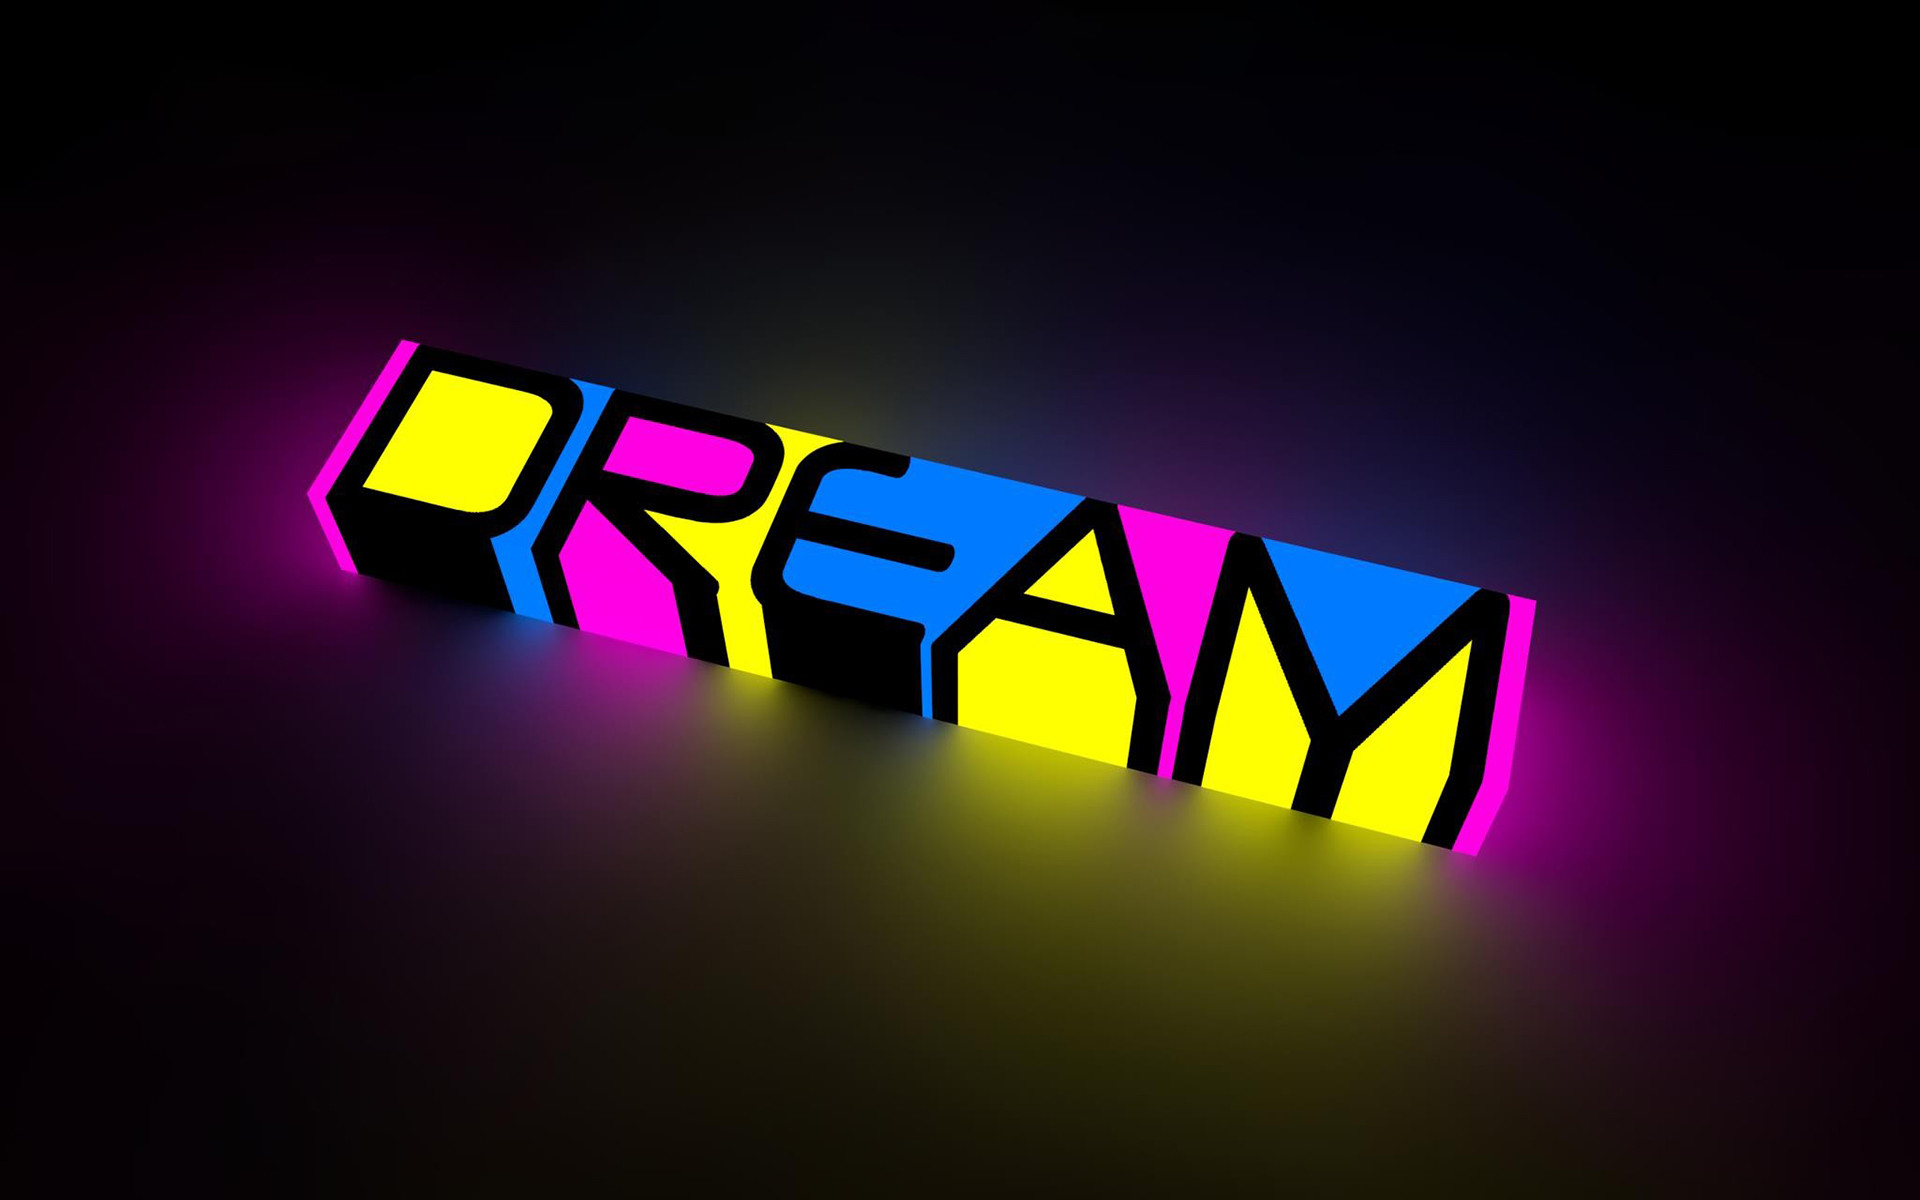 1920x1200 abstract dream color neon bright words letters motivational .